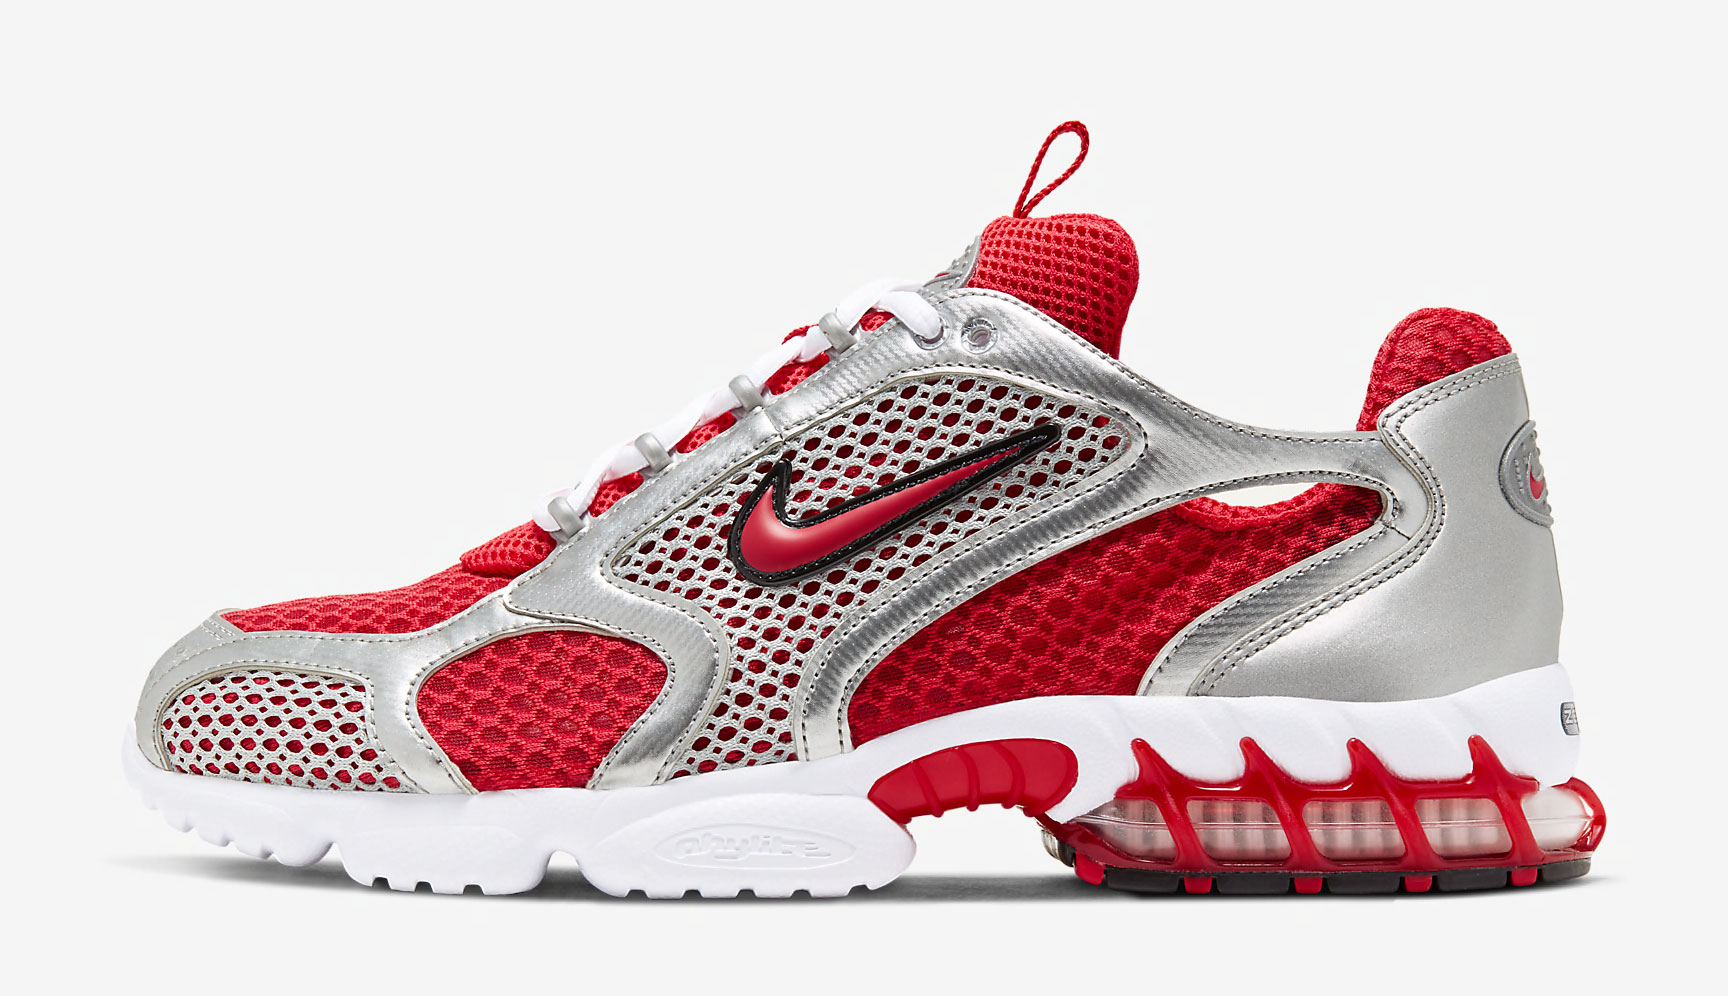 nike-air-zoom-spiridon-cage-2-track-red-silver-release-date